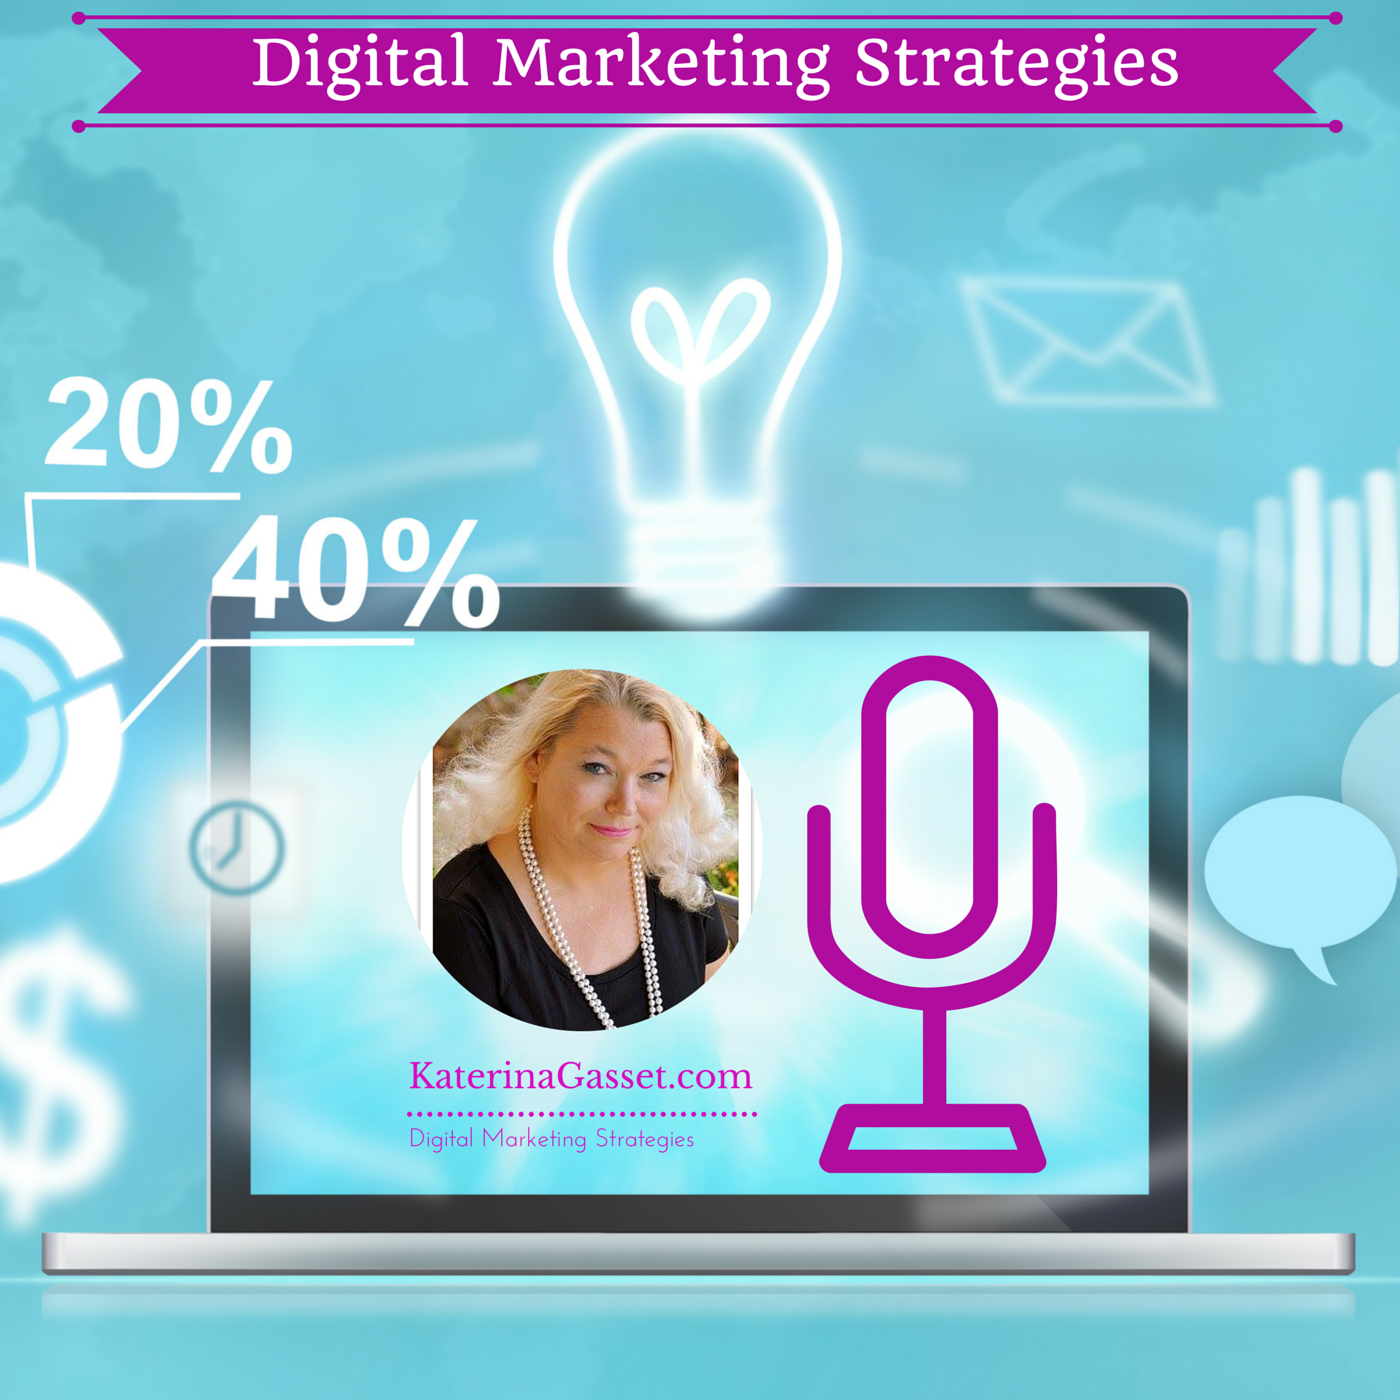 Digital Marketing Strategies - Let's Get Real About Marketing!